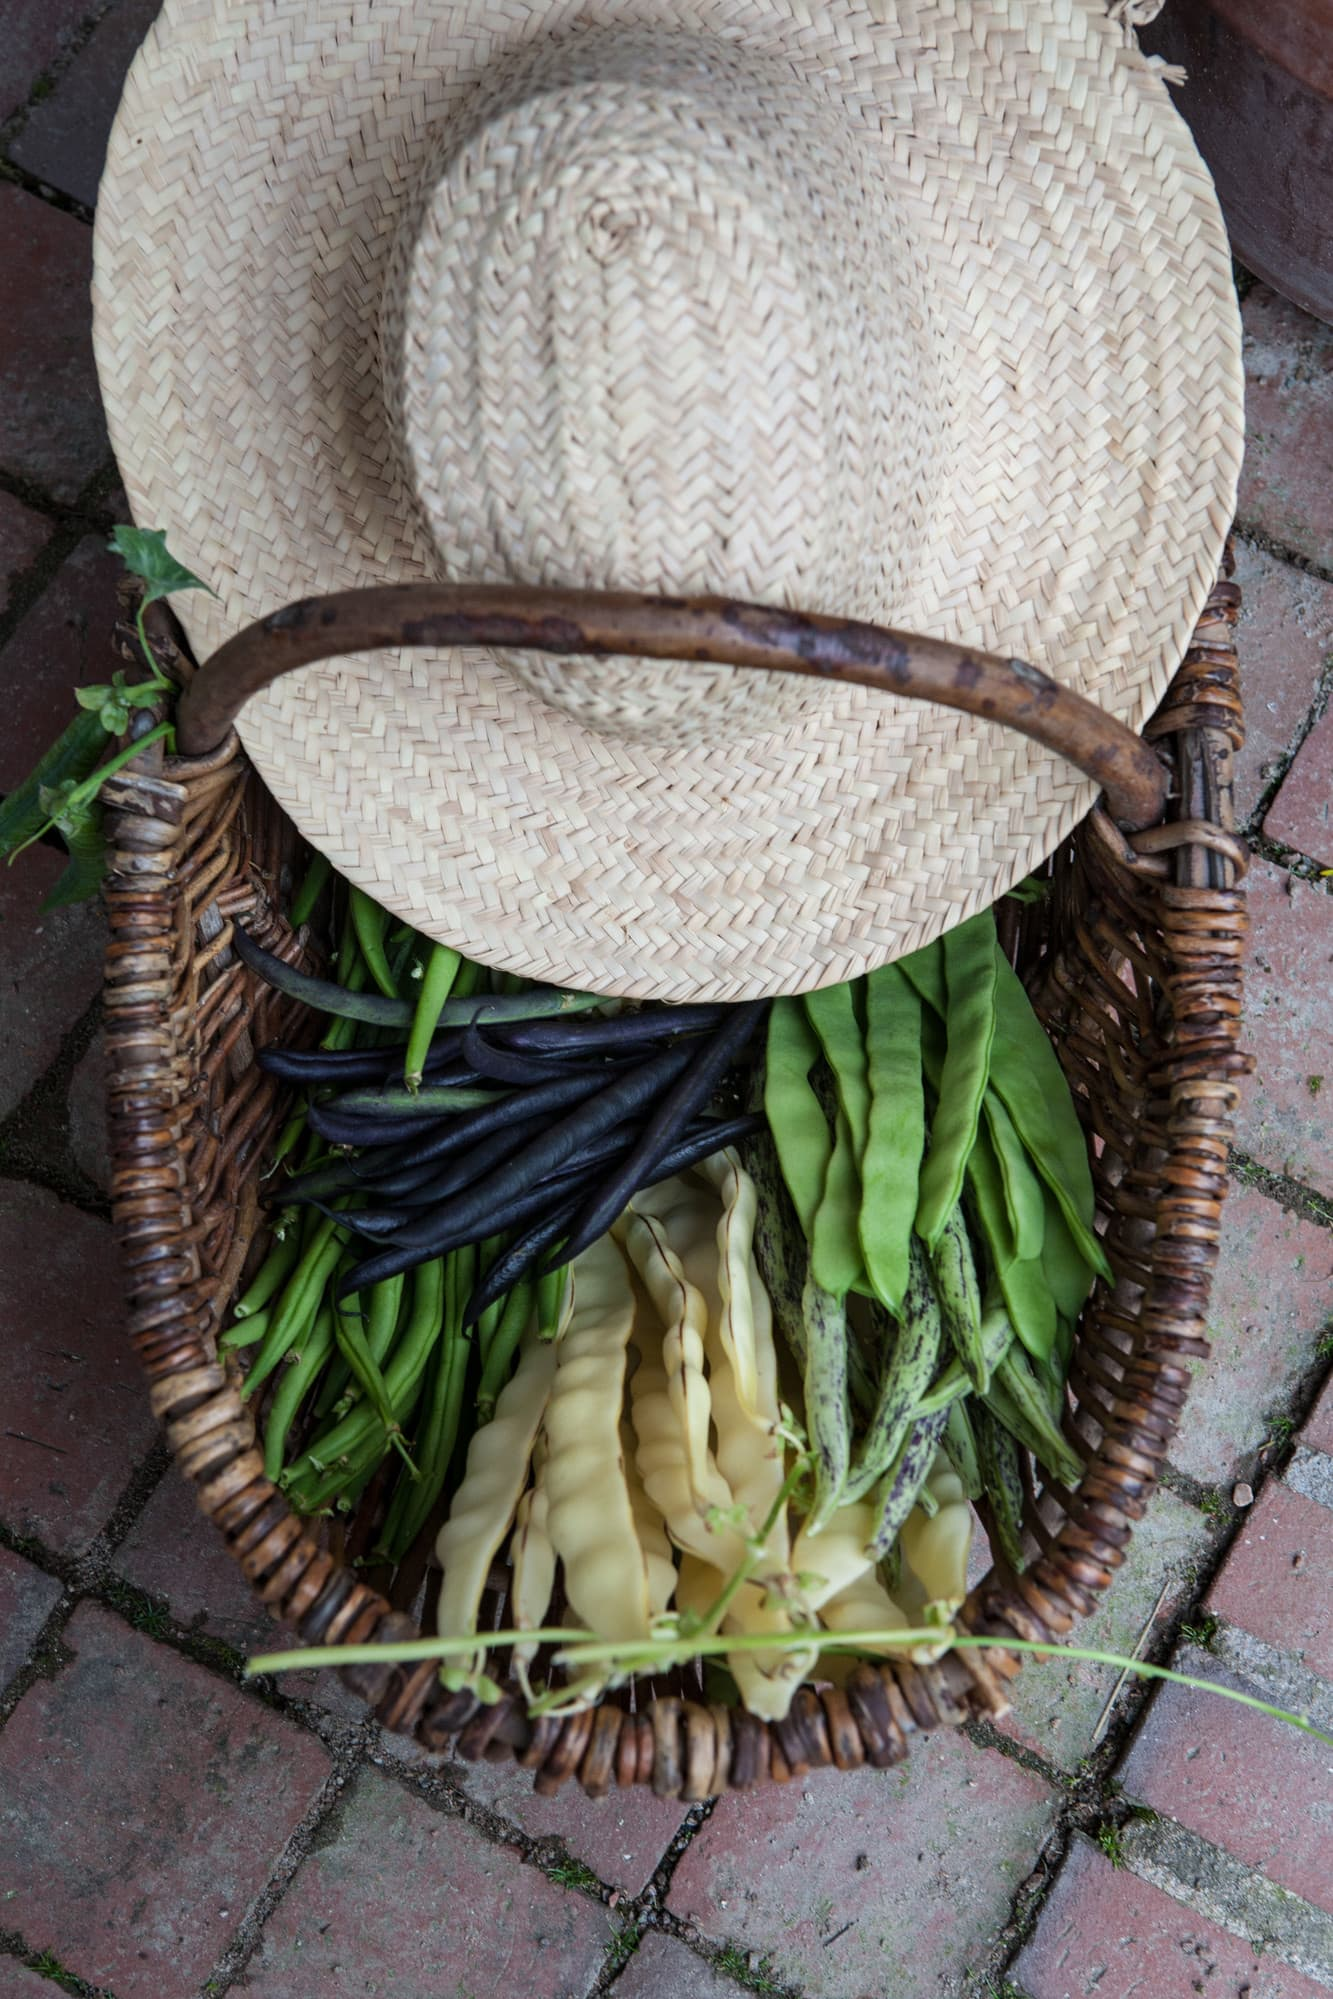 Freshly harvested wax beans, as well as purple, green and snap beans. The bright one in the foreground is called Golden gate.